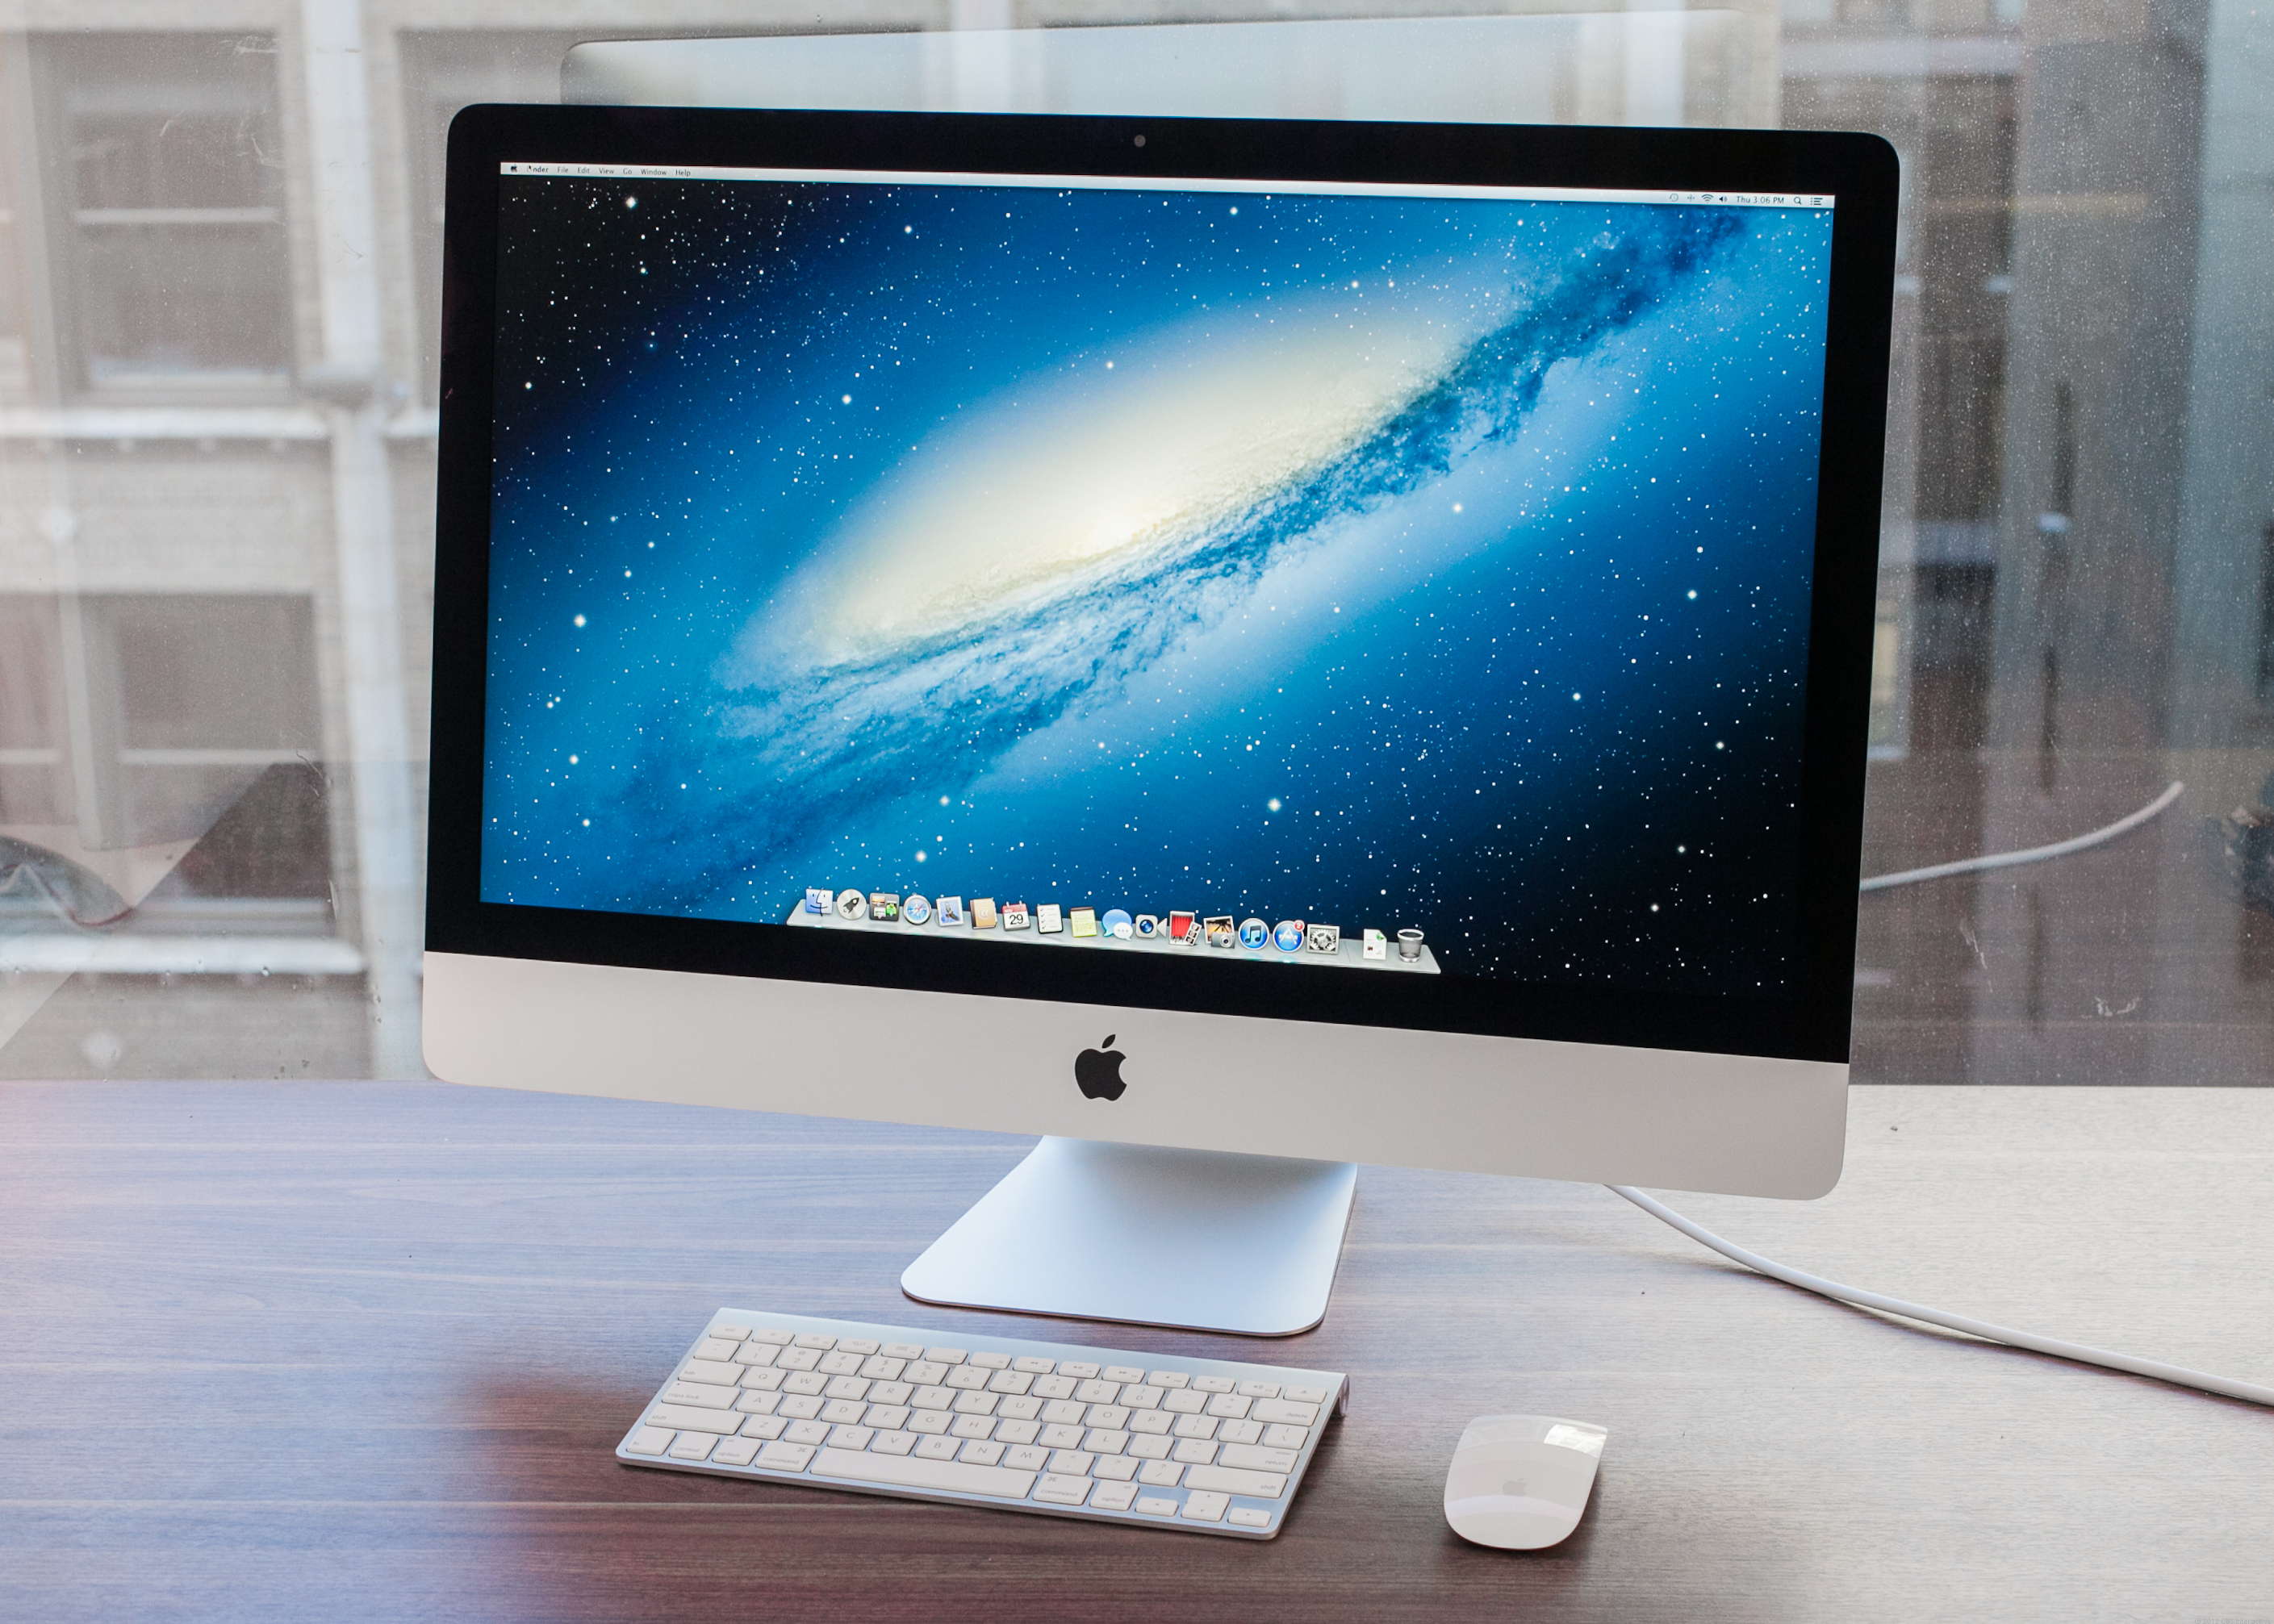 Apple iMac (27in, 2.9GHz, fall 2012)